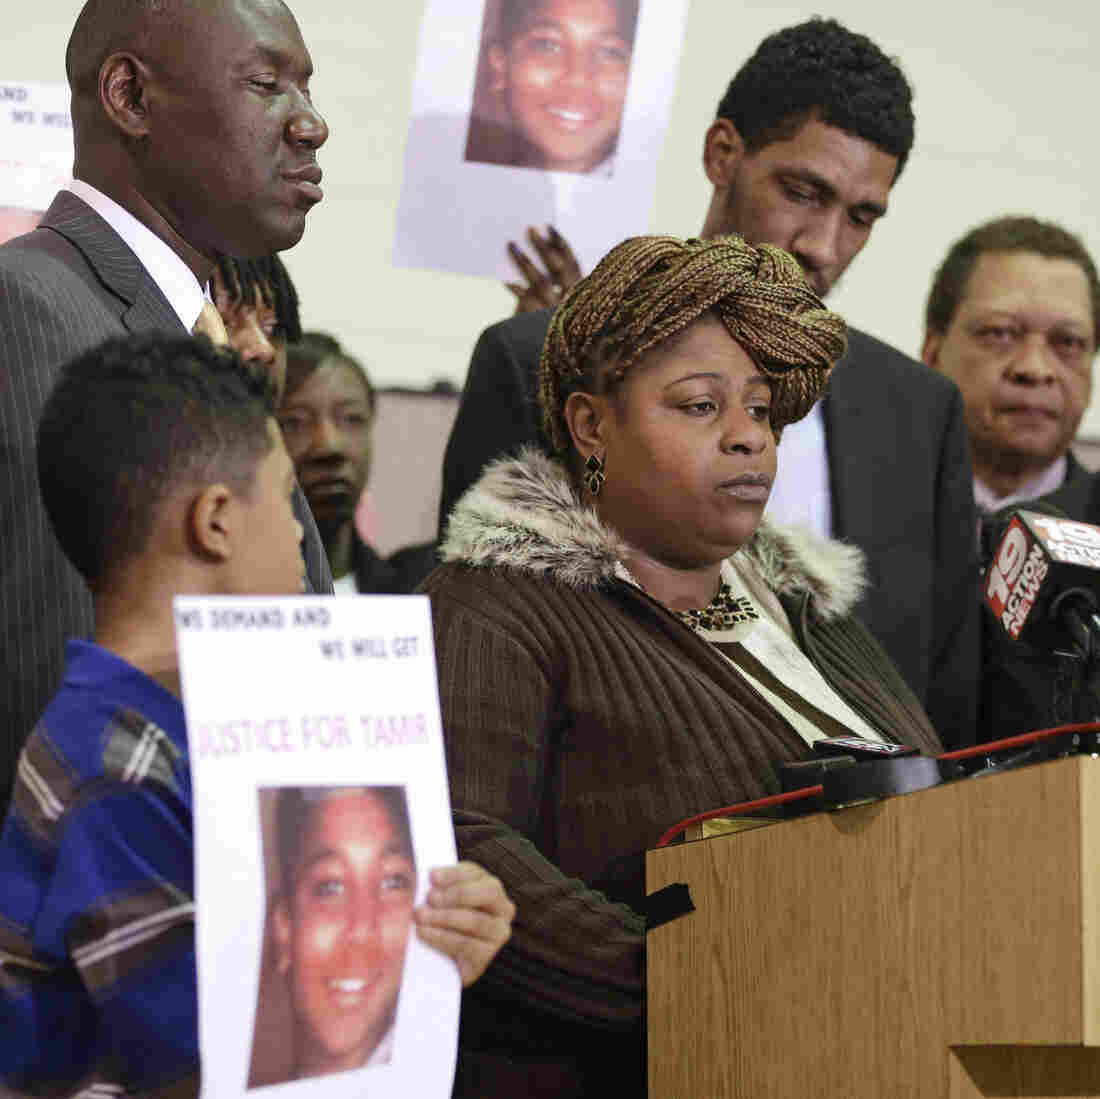 Tamir Rice's Family: Prosecutor Is On A Quest To Avoid Accountability